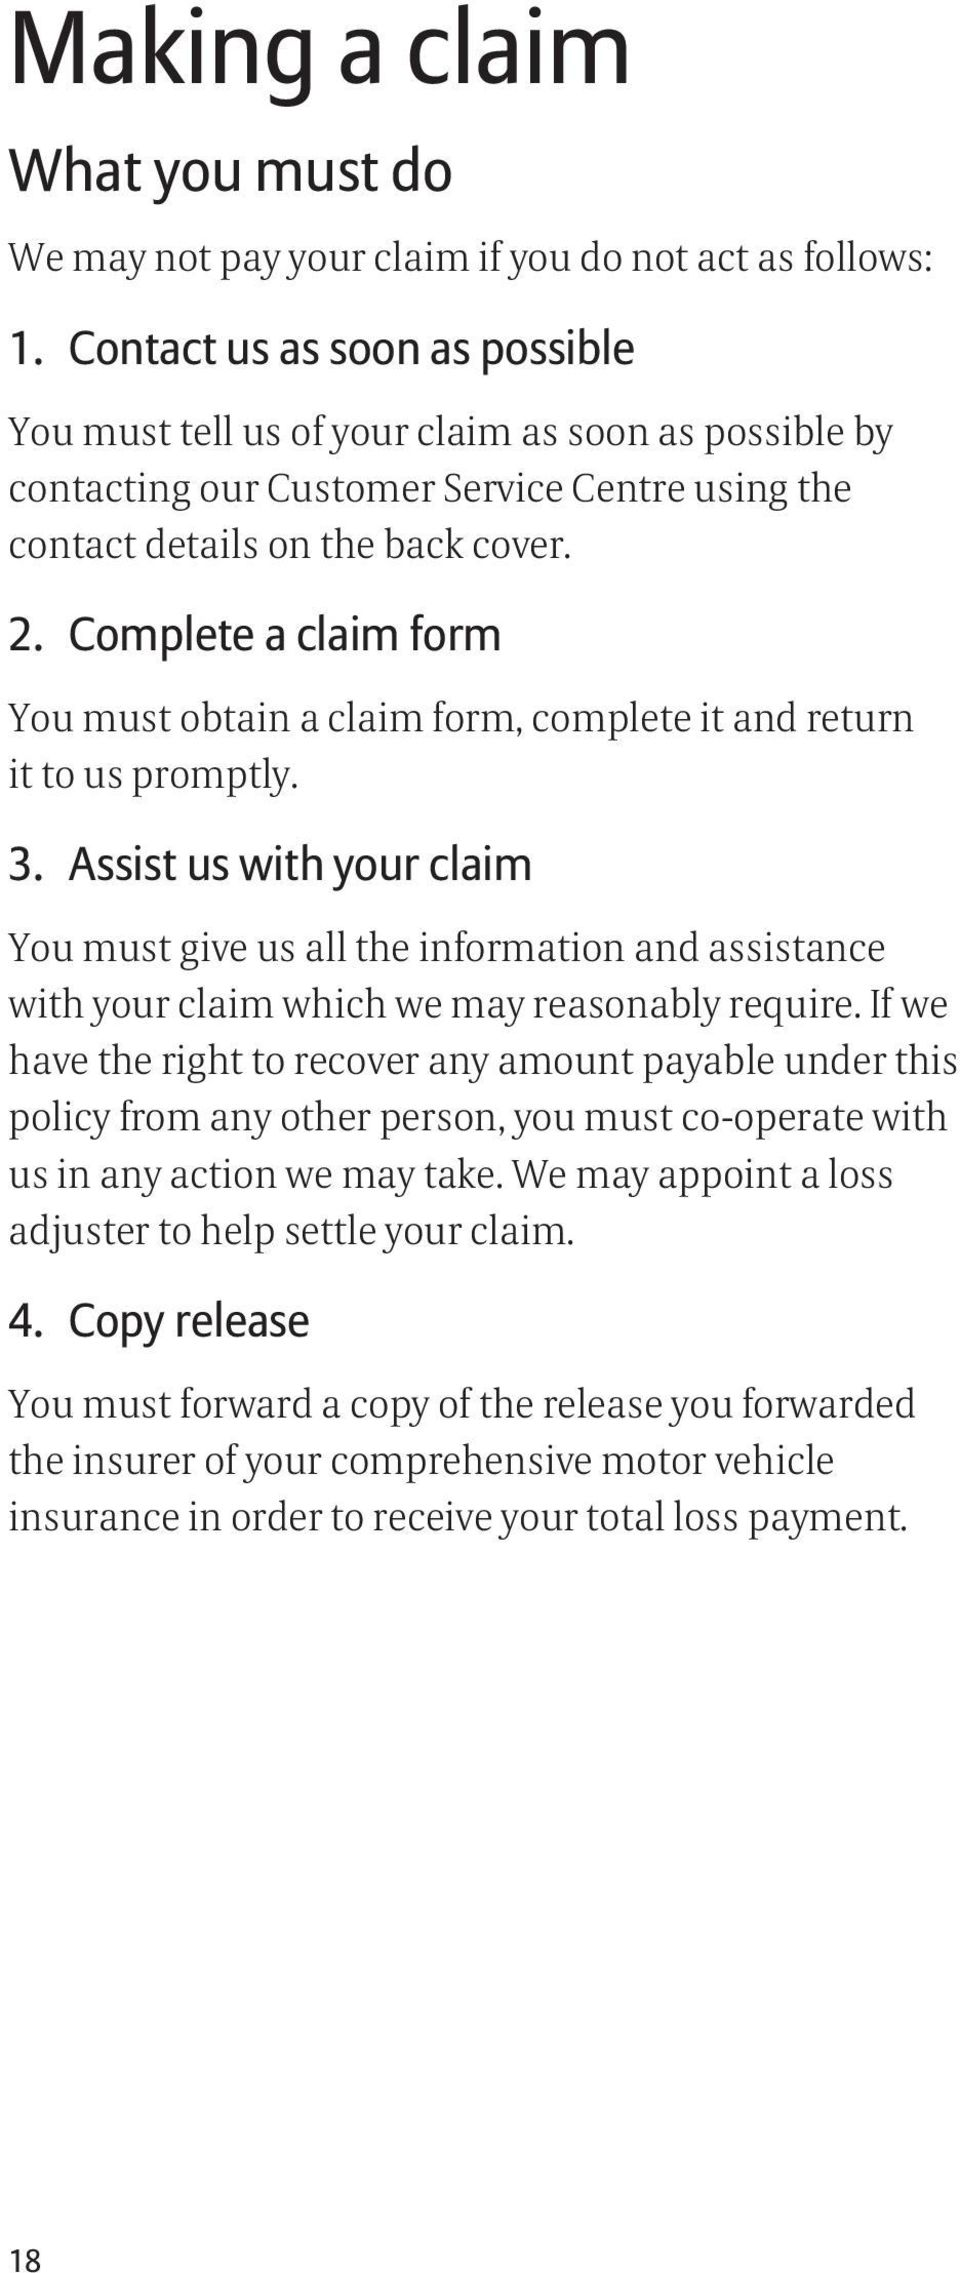 Complete a claim form You must obtain a claim form, complete it and return it to us promptly. 3.